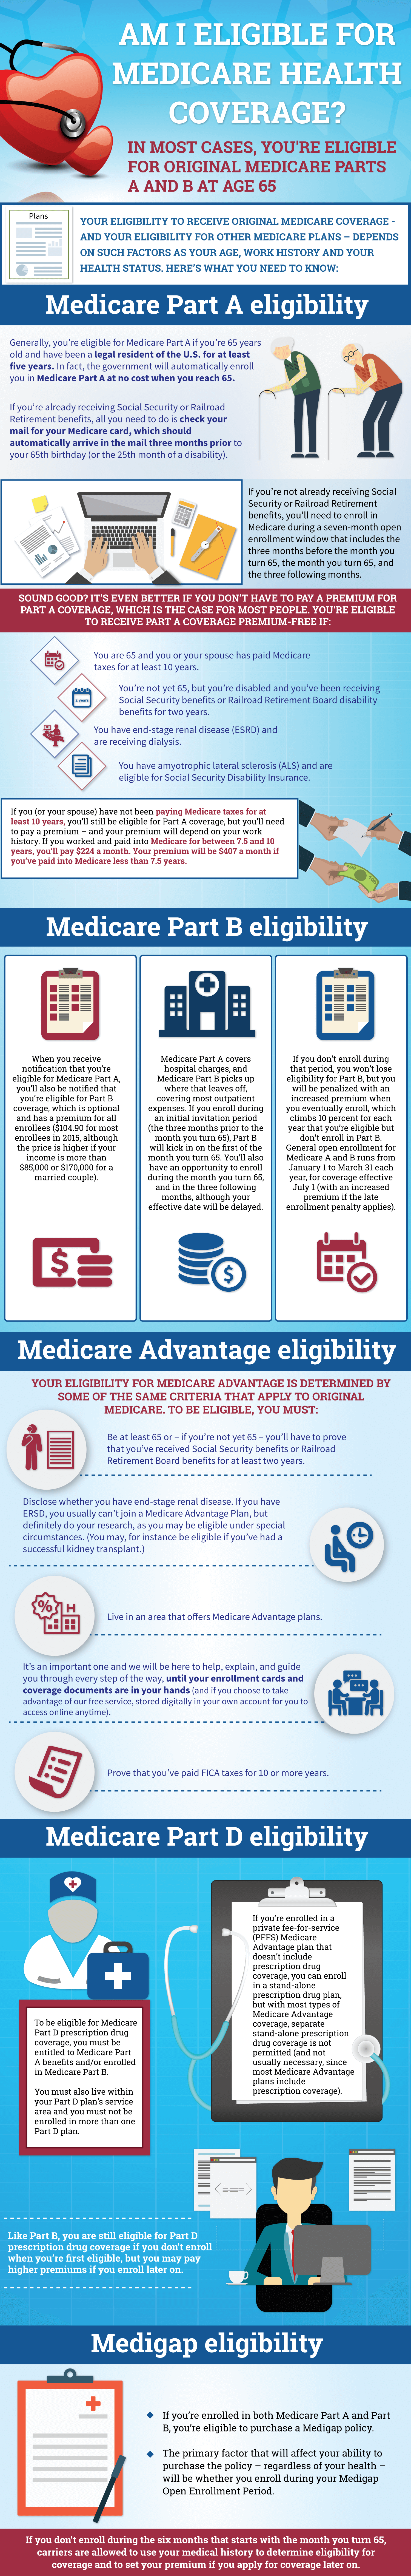 Am I eligible for Medicare health coverage